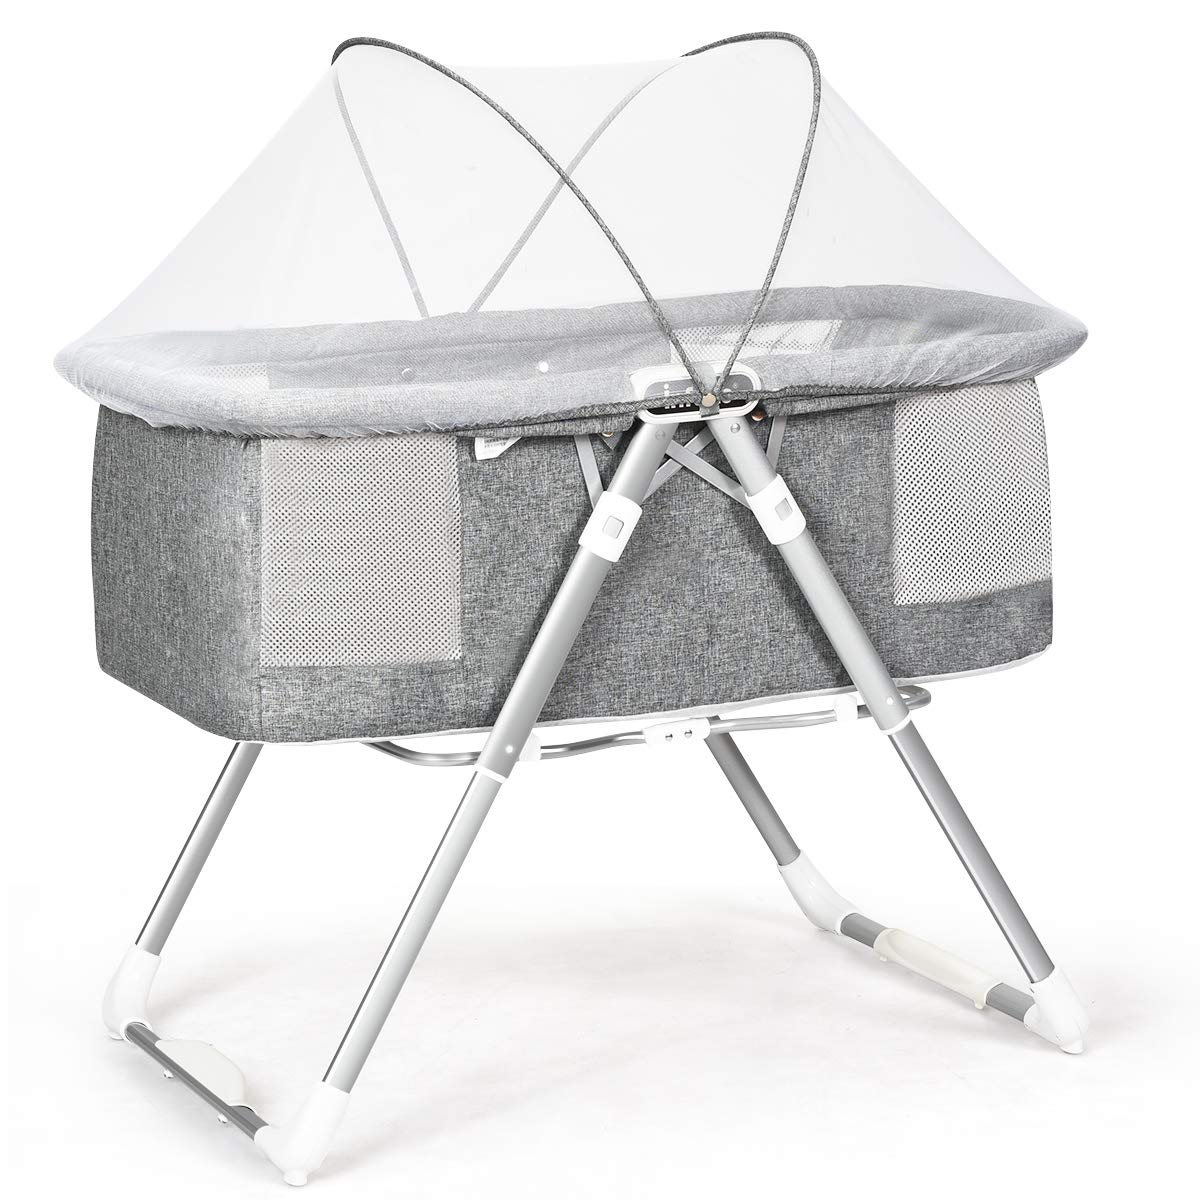 INFANS 2 in 1 Rocking Bassinet for Newborn Baby, One-Second Fold Travel Crib with Detachable & Thicken Mattress, Height Adjustable Legs, Mosquito Net, Cradle with Stationary & Rock Mode (Grey)